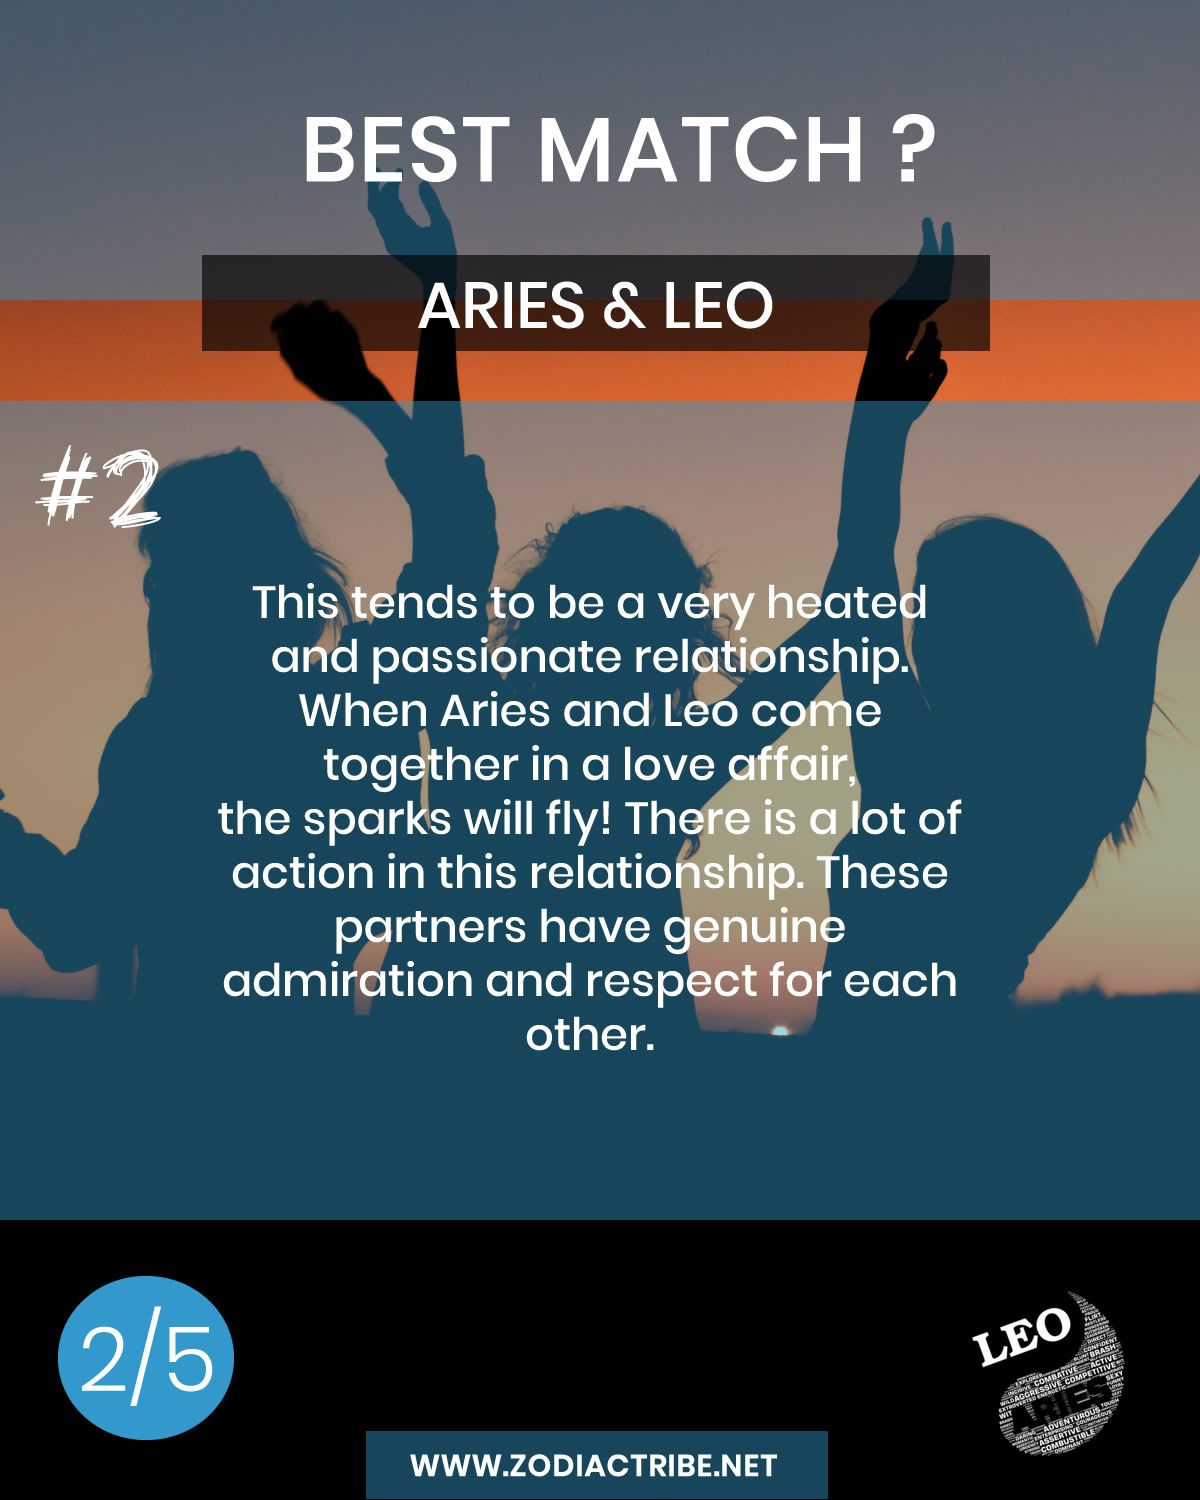 aries march 22 compatibility